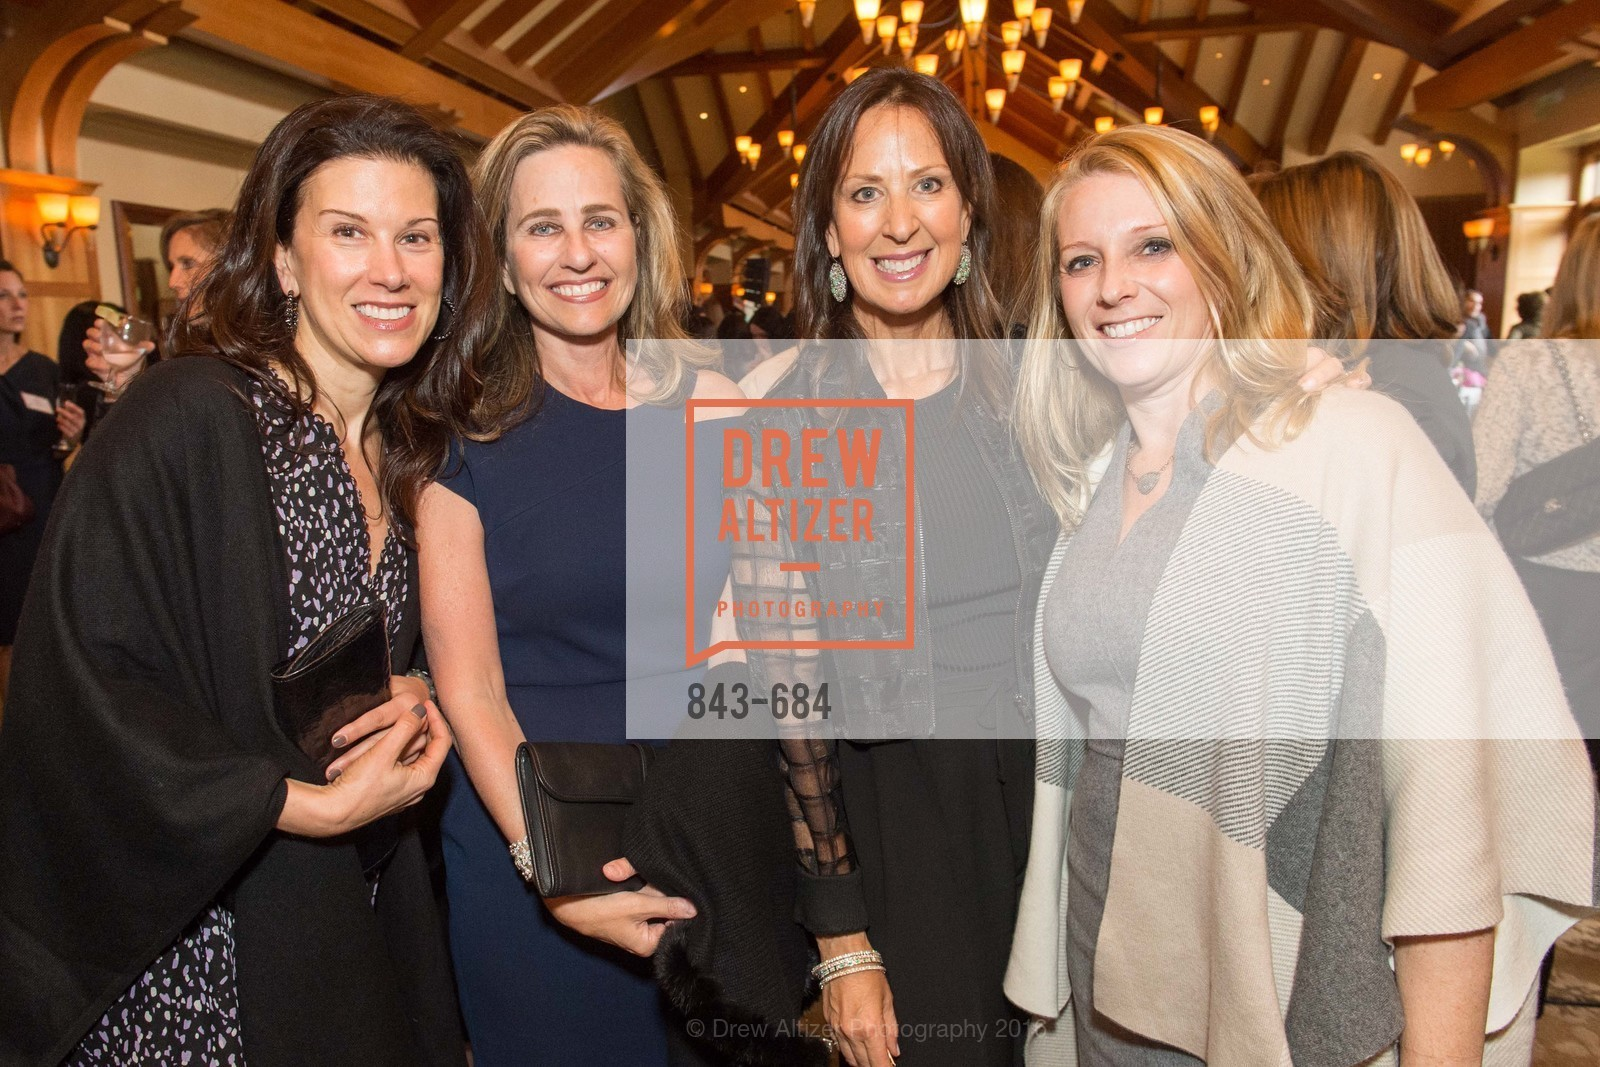 Nicole Smith, Gail Karp, Jessica Weil, Michelle Ebersman, Under One Umbrella, Sharon Heights Golf and Country Club, January 13th, 2016,Drew Altizer, Drew Altizer Photography, full-service event agency, private events, San Francisco photographer, photographer California